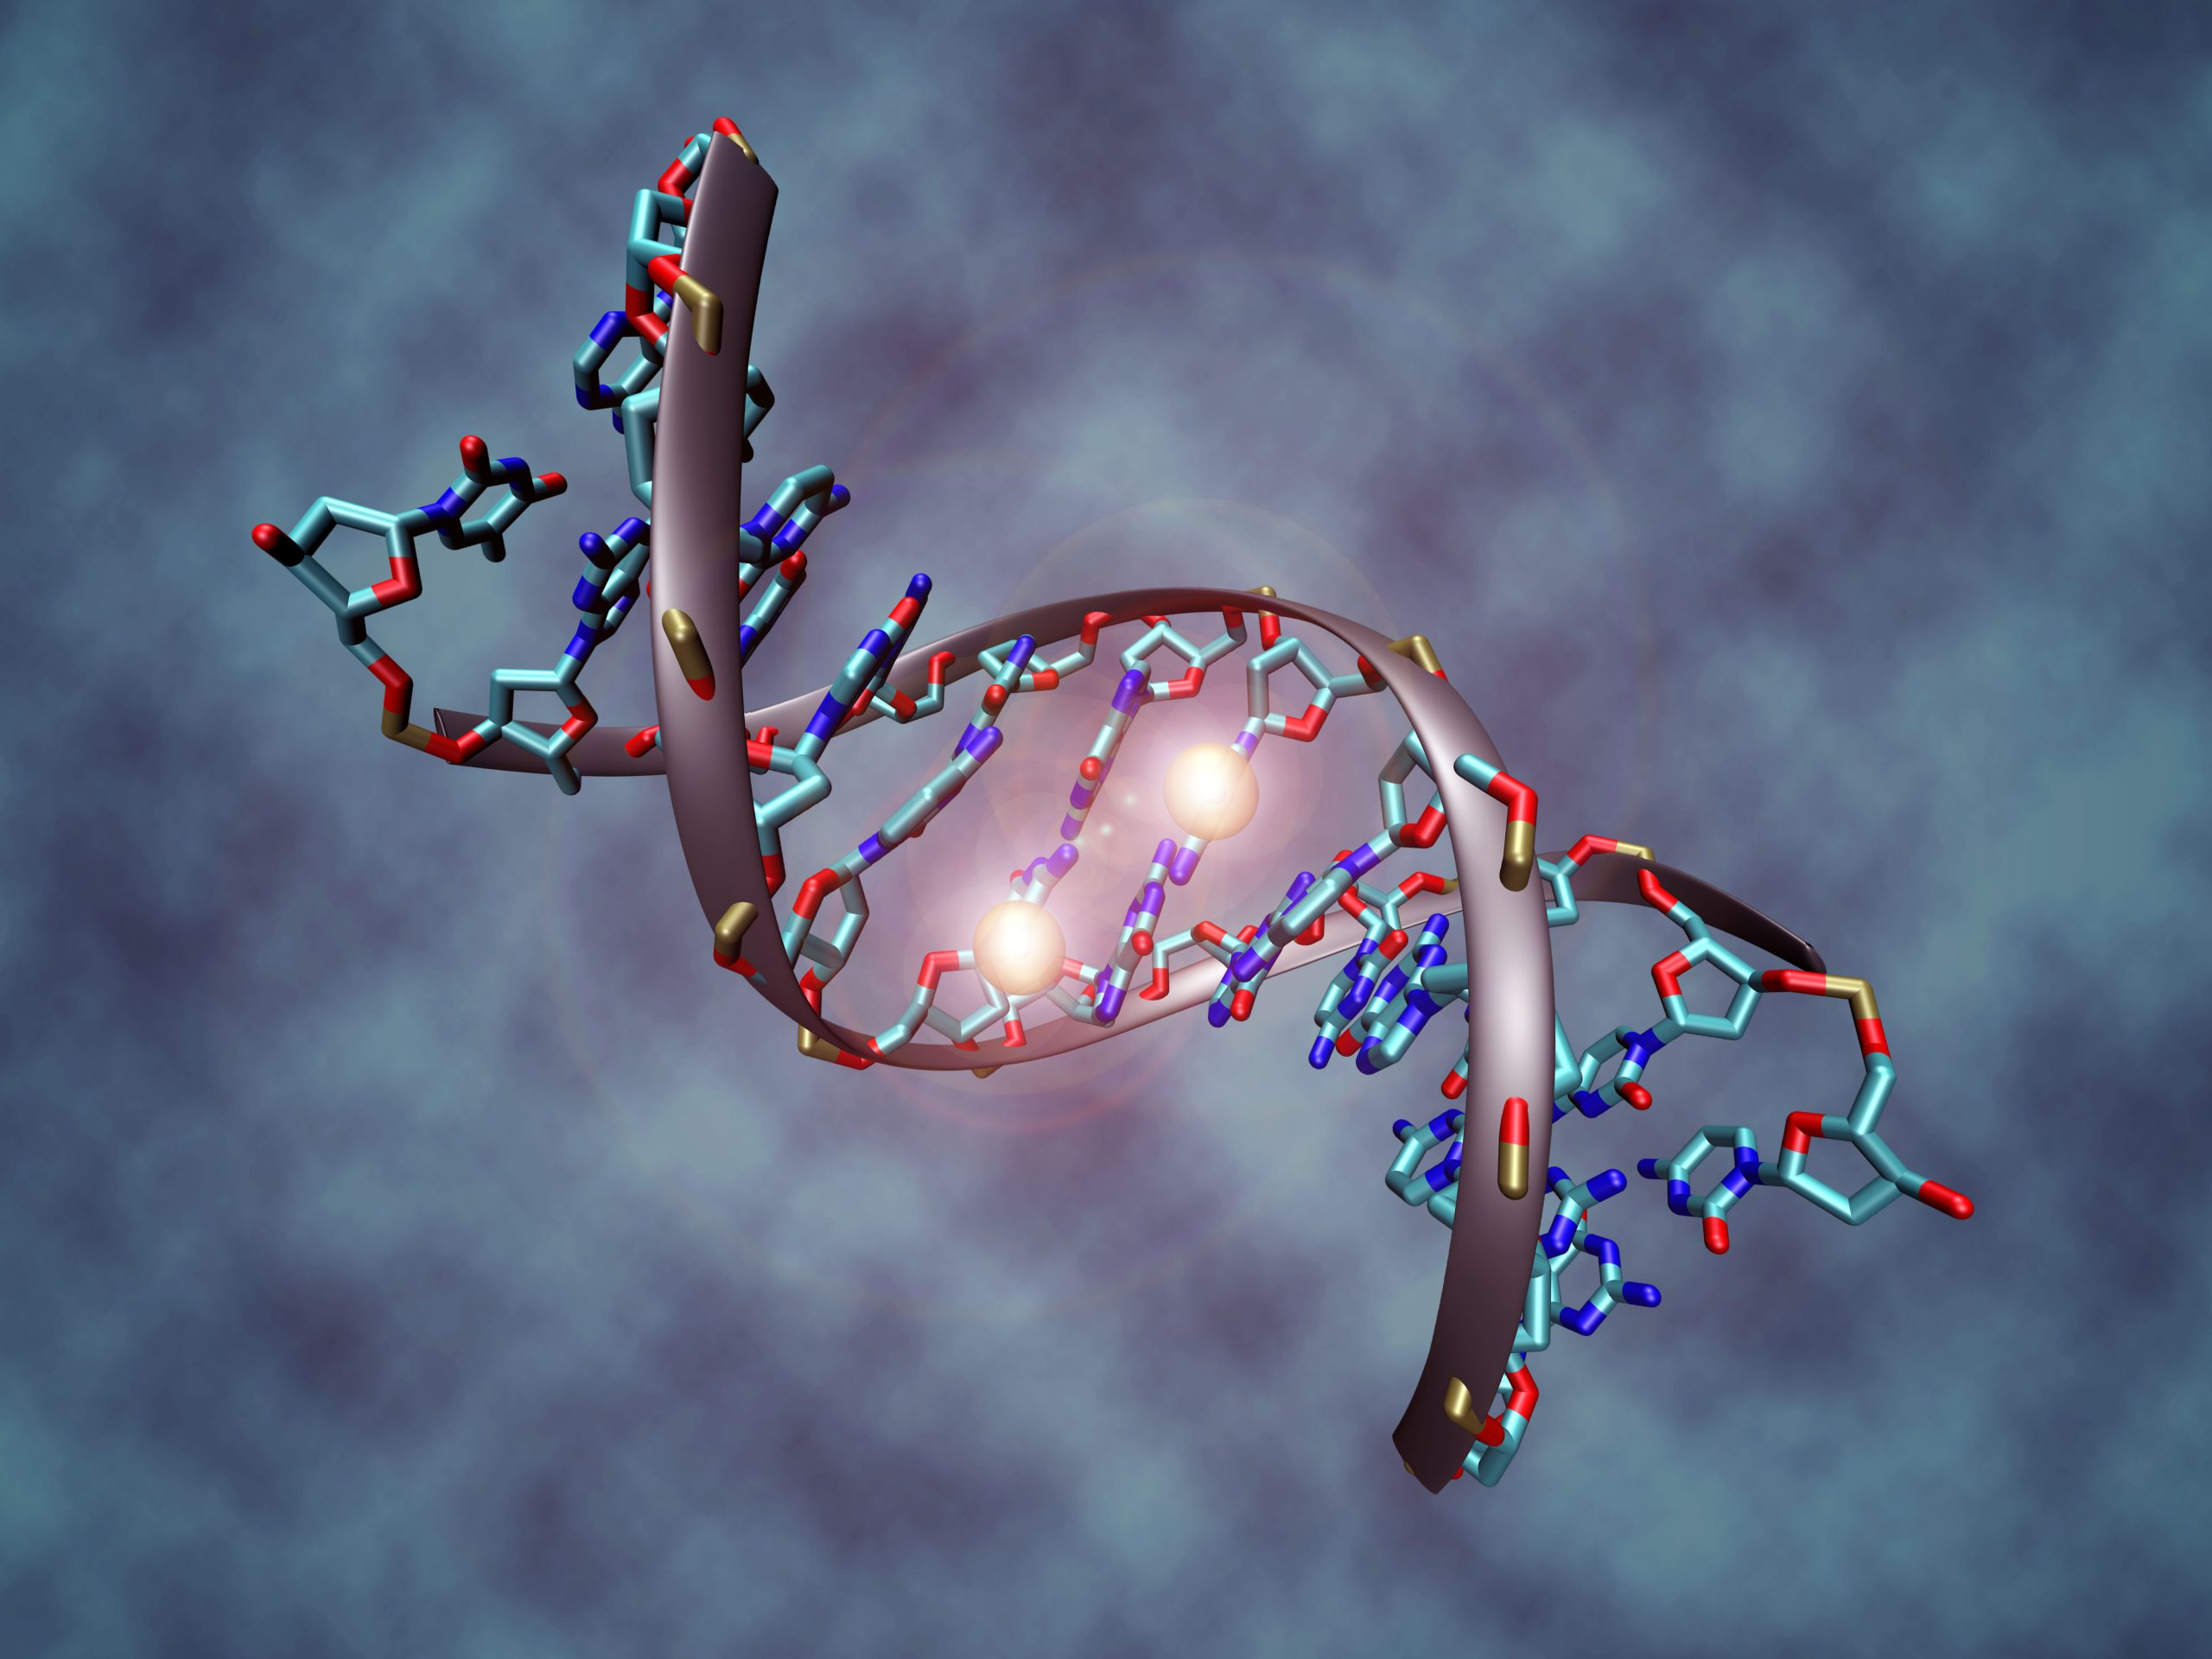 Communicating the science of DNA